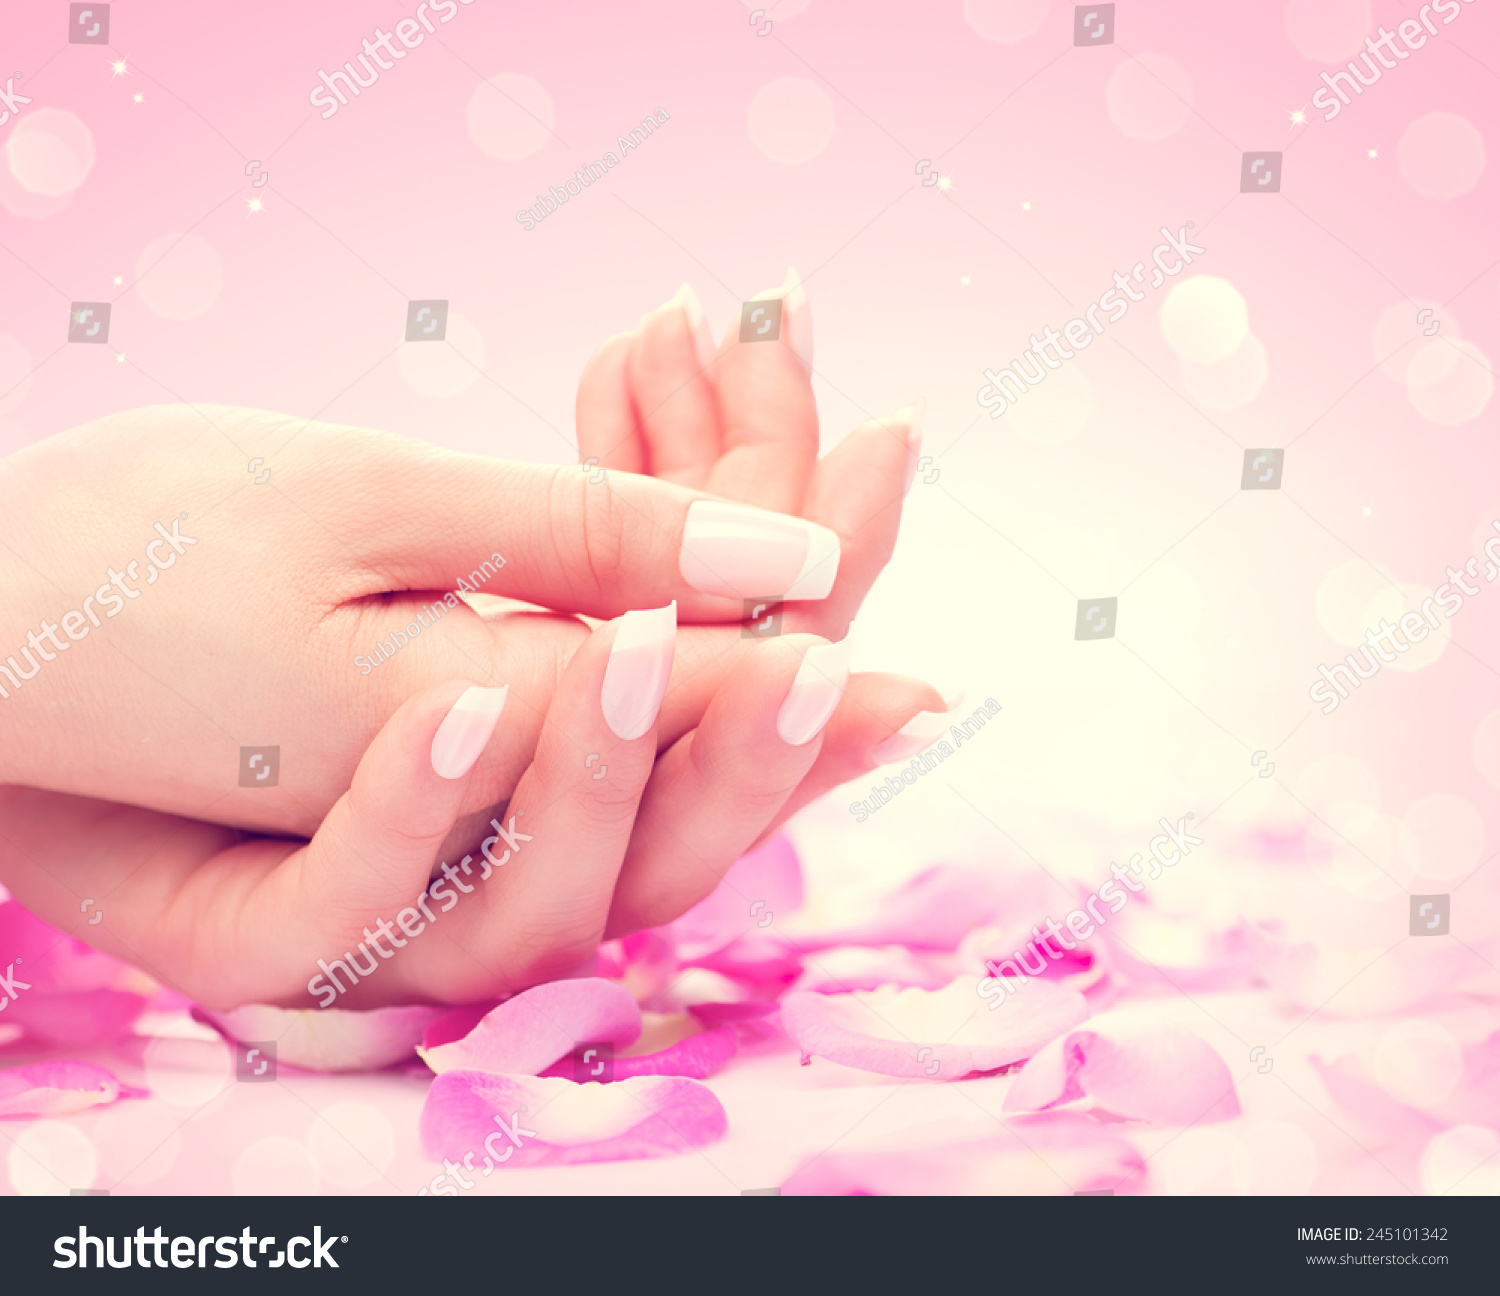 Manicure hands spa beautiful feamle hands stock photo for A trial beauty treatment salon